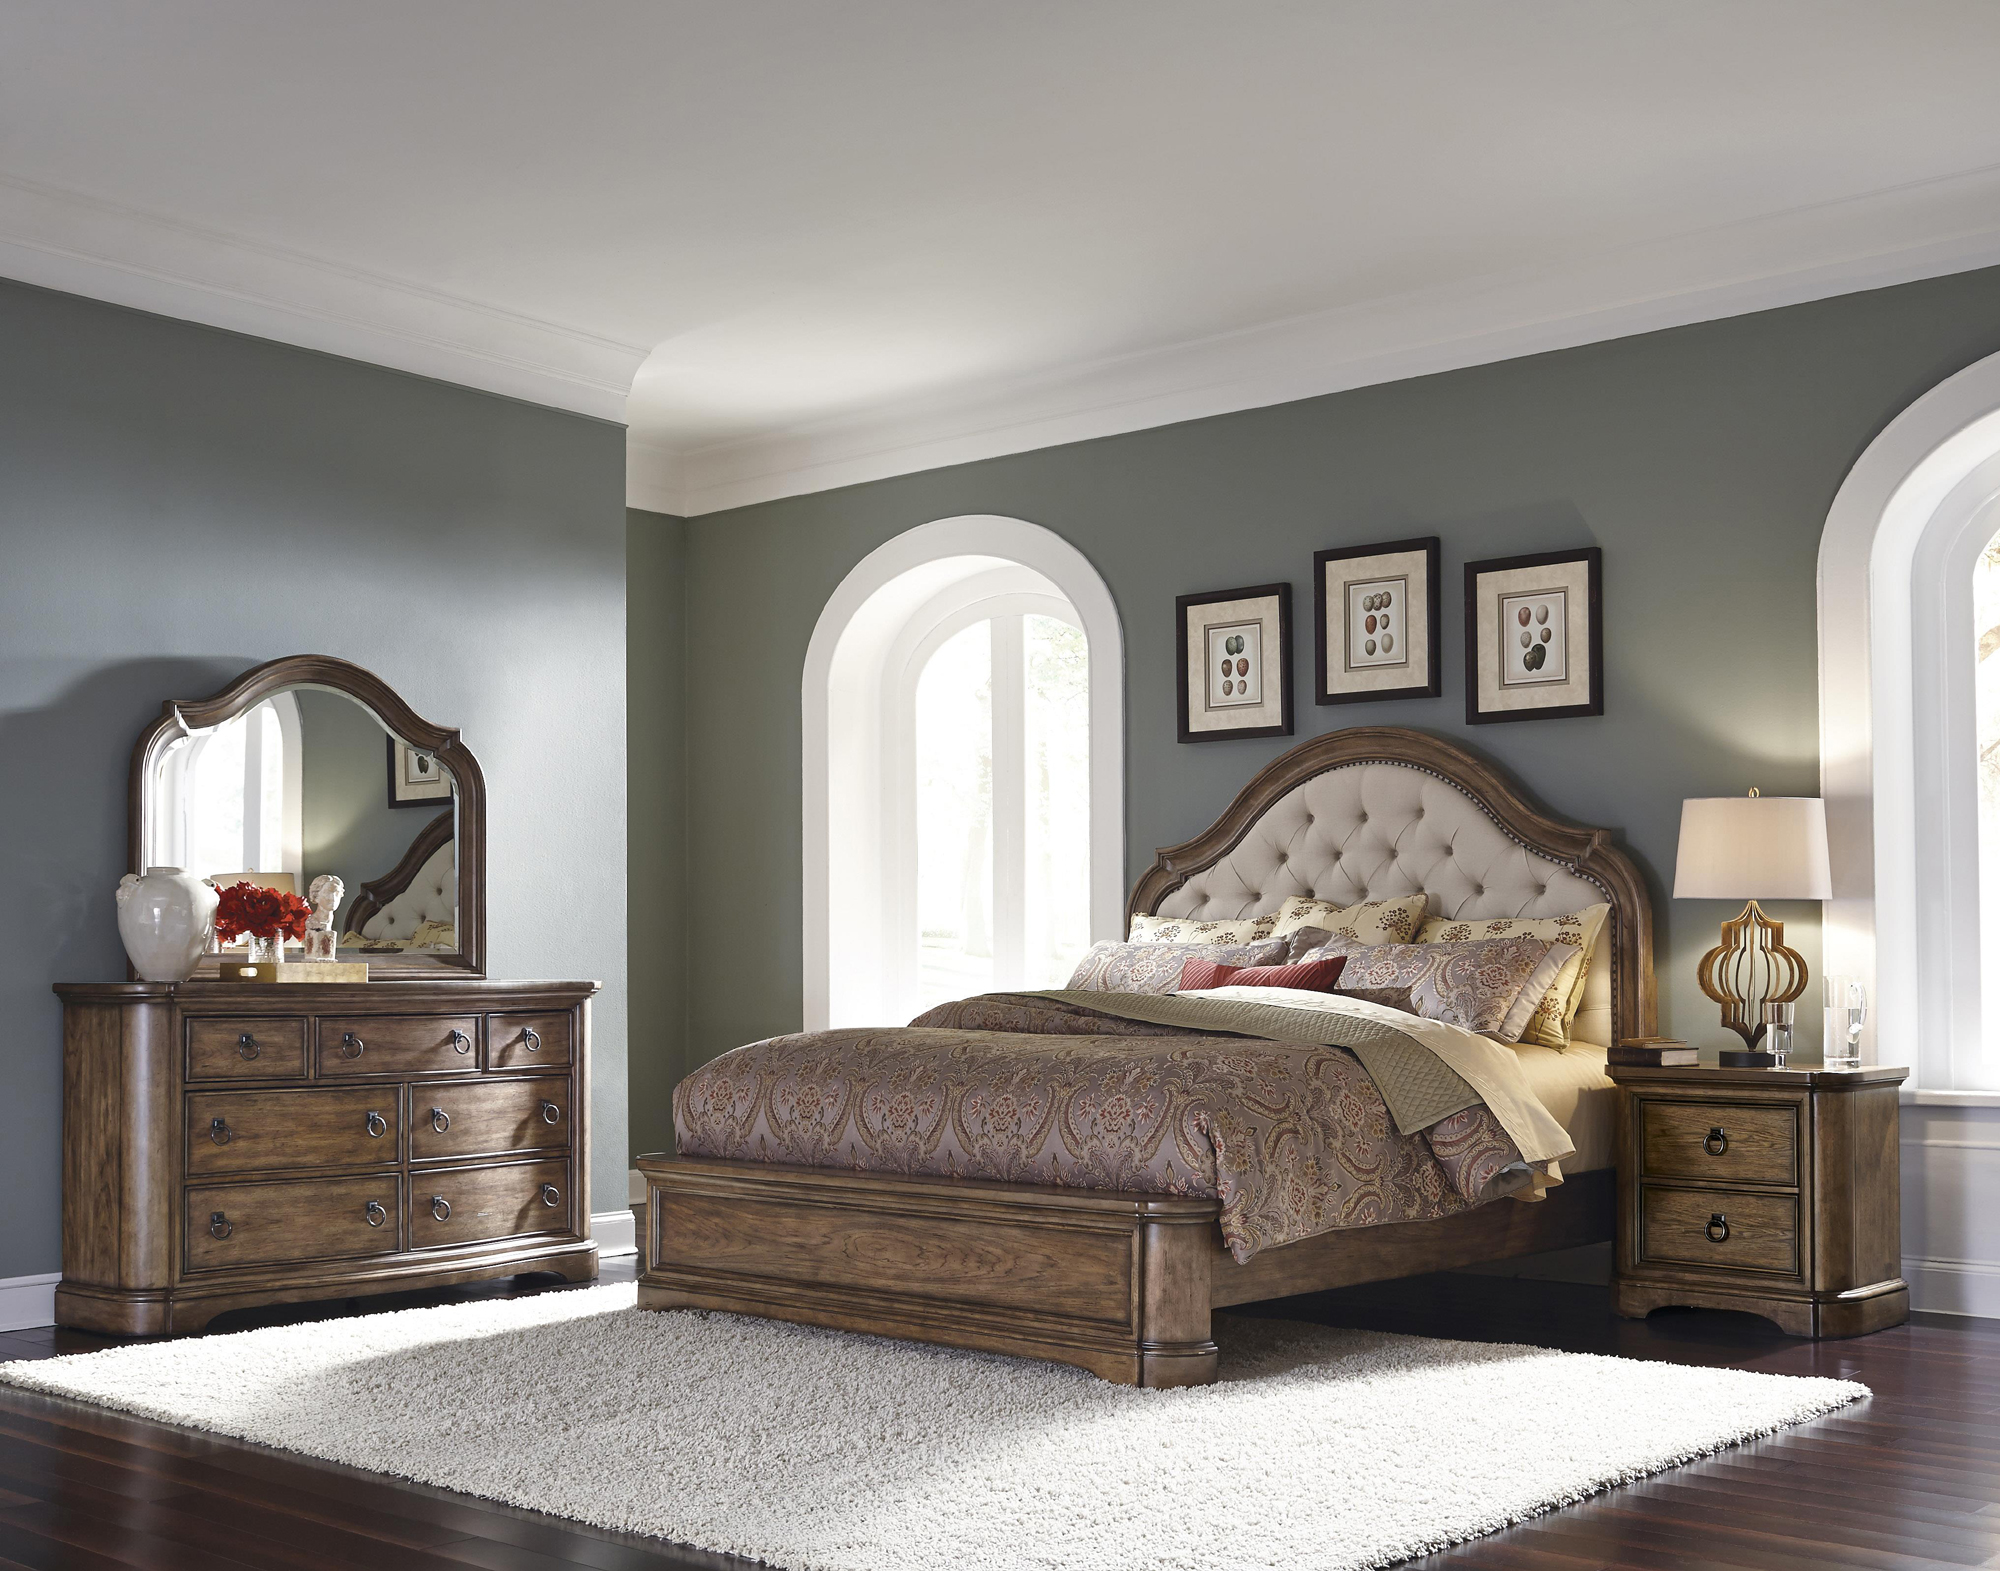 Aurora king tufted upholstered bedroom set with linen fabric by